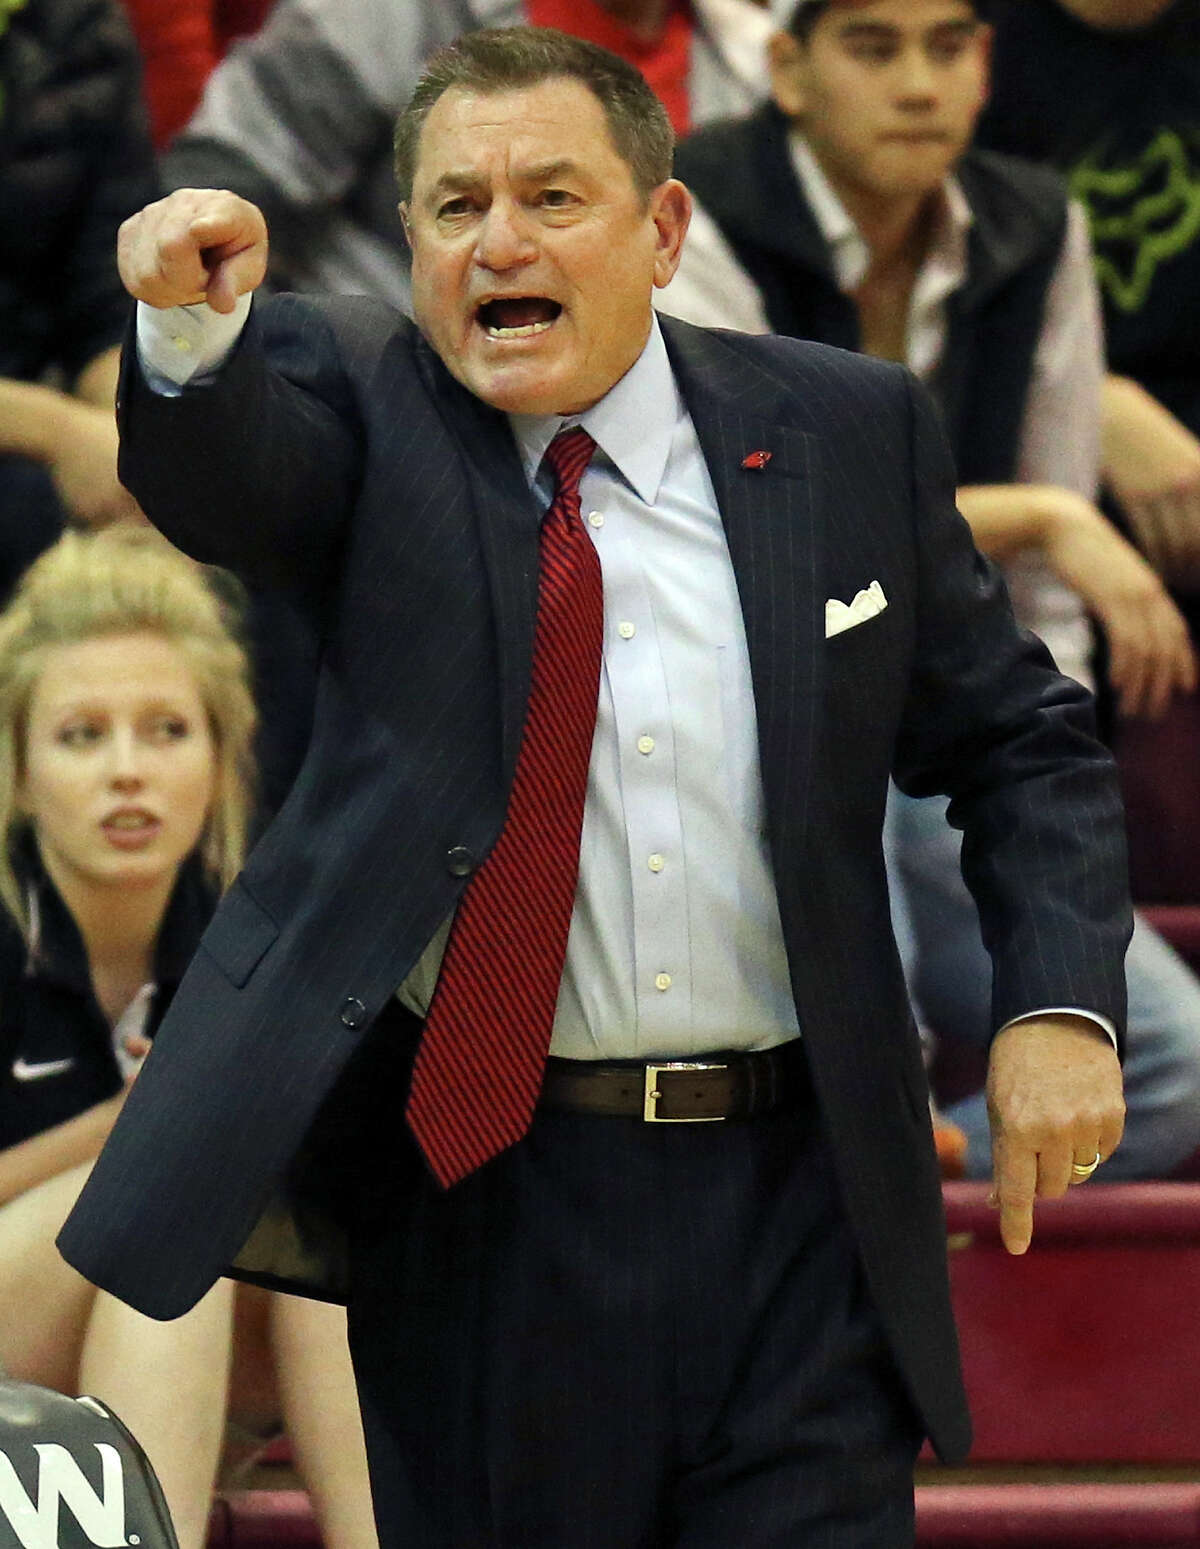 University of the Incarnate Word head coach Ken Burmeister yells instructions to the team during second half action against Abilene Christian University Thursday Feb. 13, 2014 at the Alice P. McDermott Convocation Center on the UIW campus. UIW won 80-68.